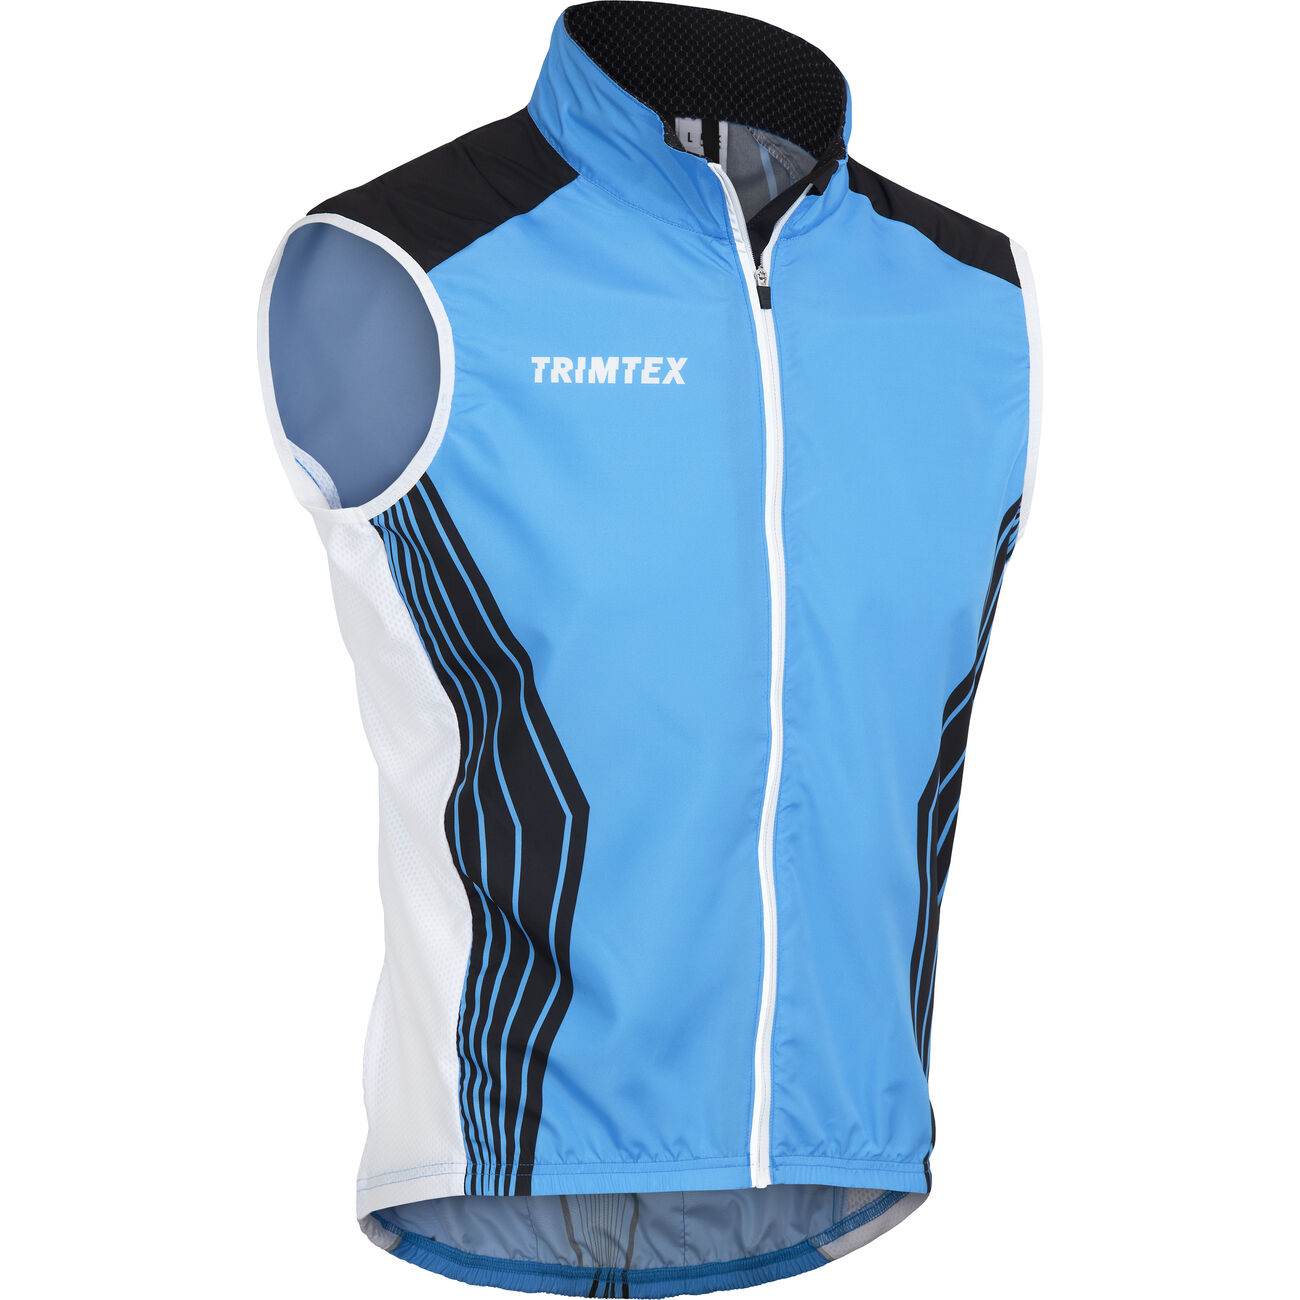 Team cycling vest men's